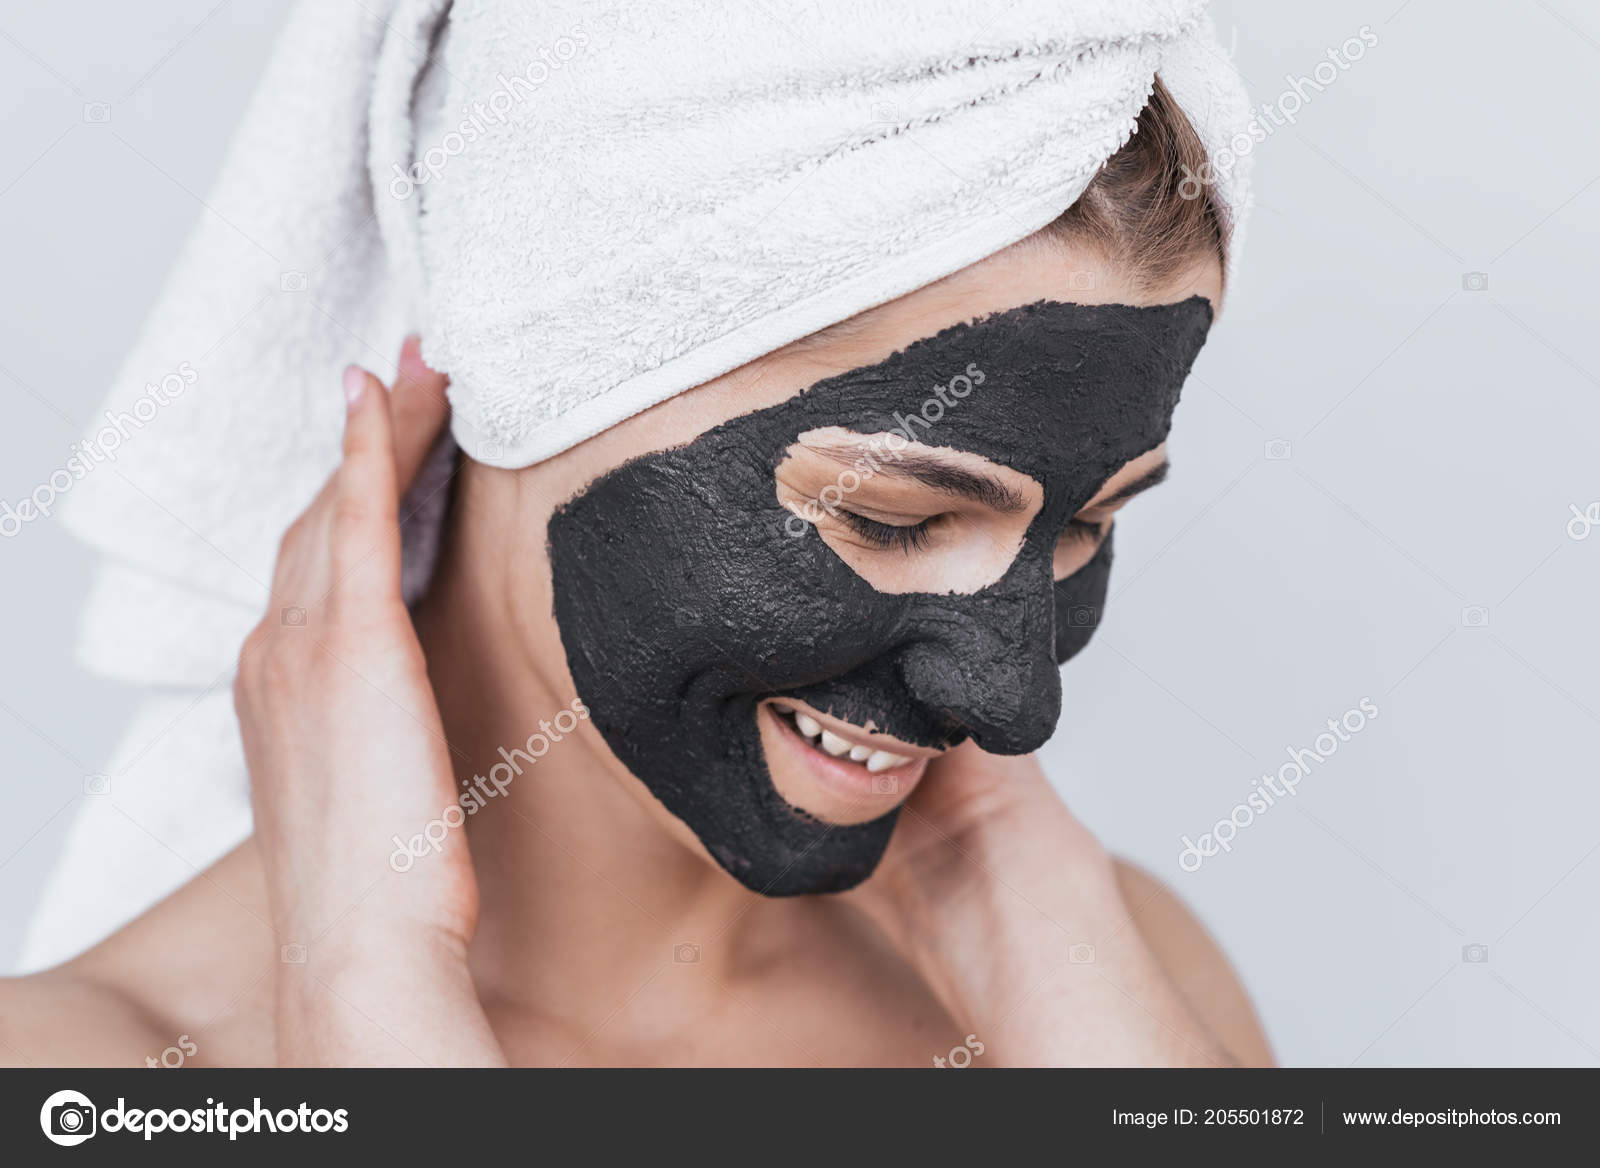 What is useful for black clay for the face